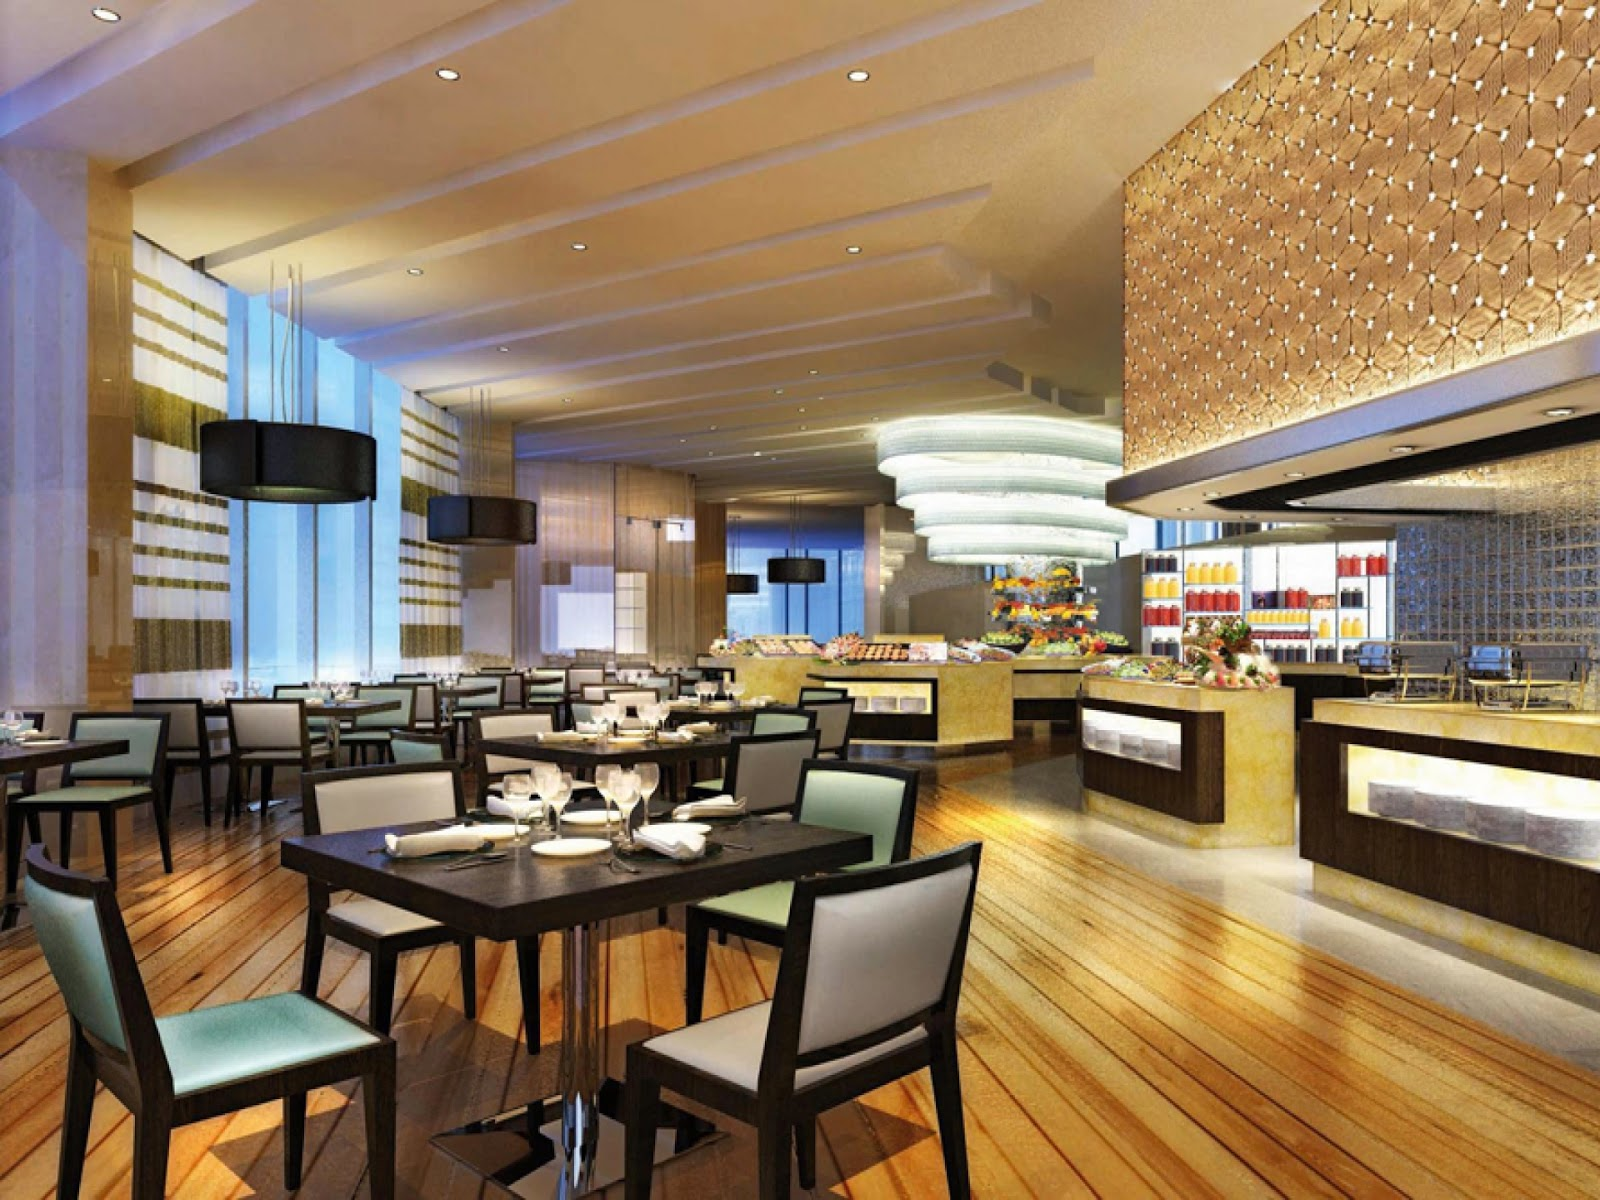 restaurant interior design GEGQXUI